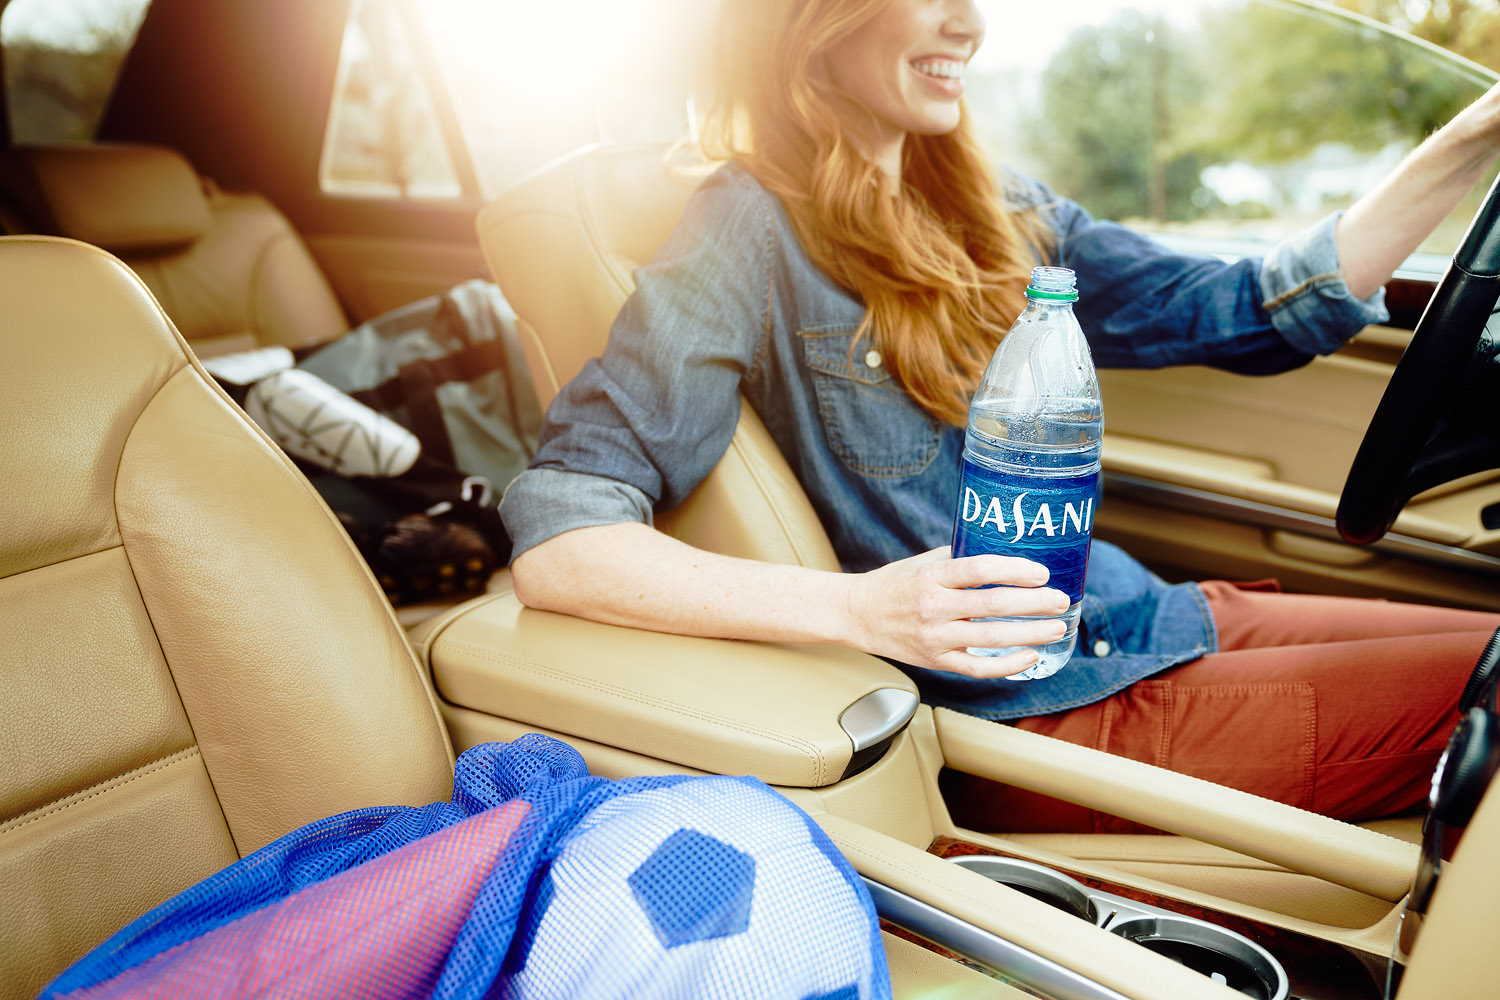 hales photo atlanta advertising photogrphy production coca-cola commercial photographers dasani product lifestyle photography georgia-2003.jpg